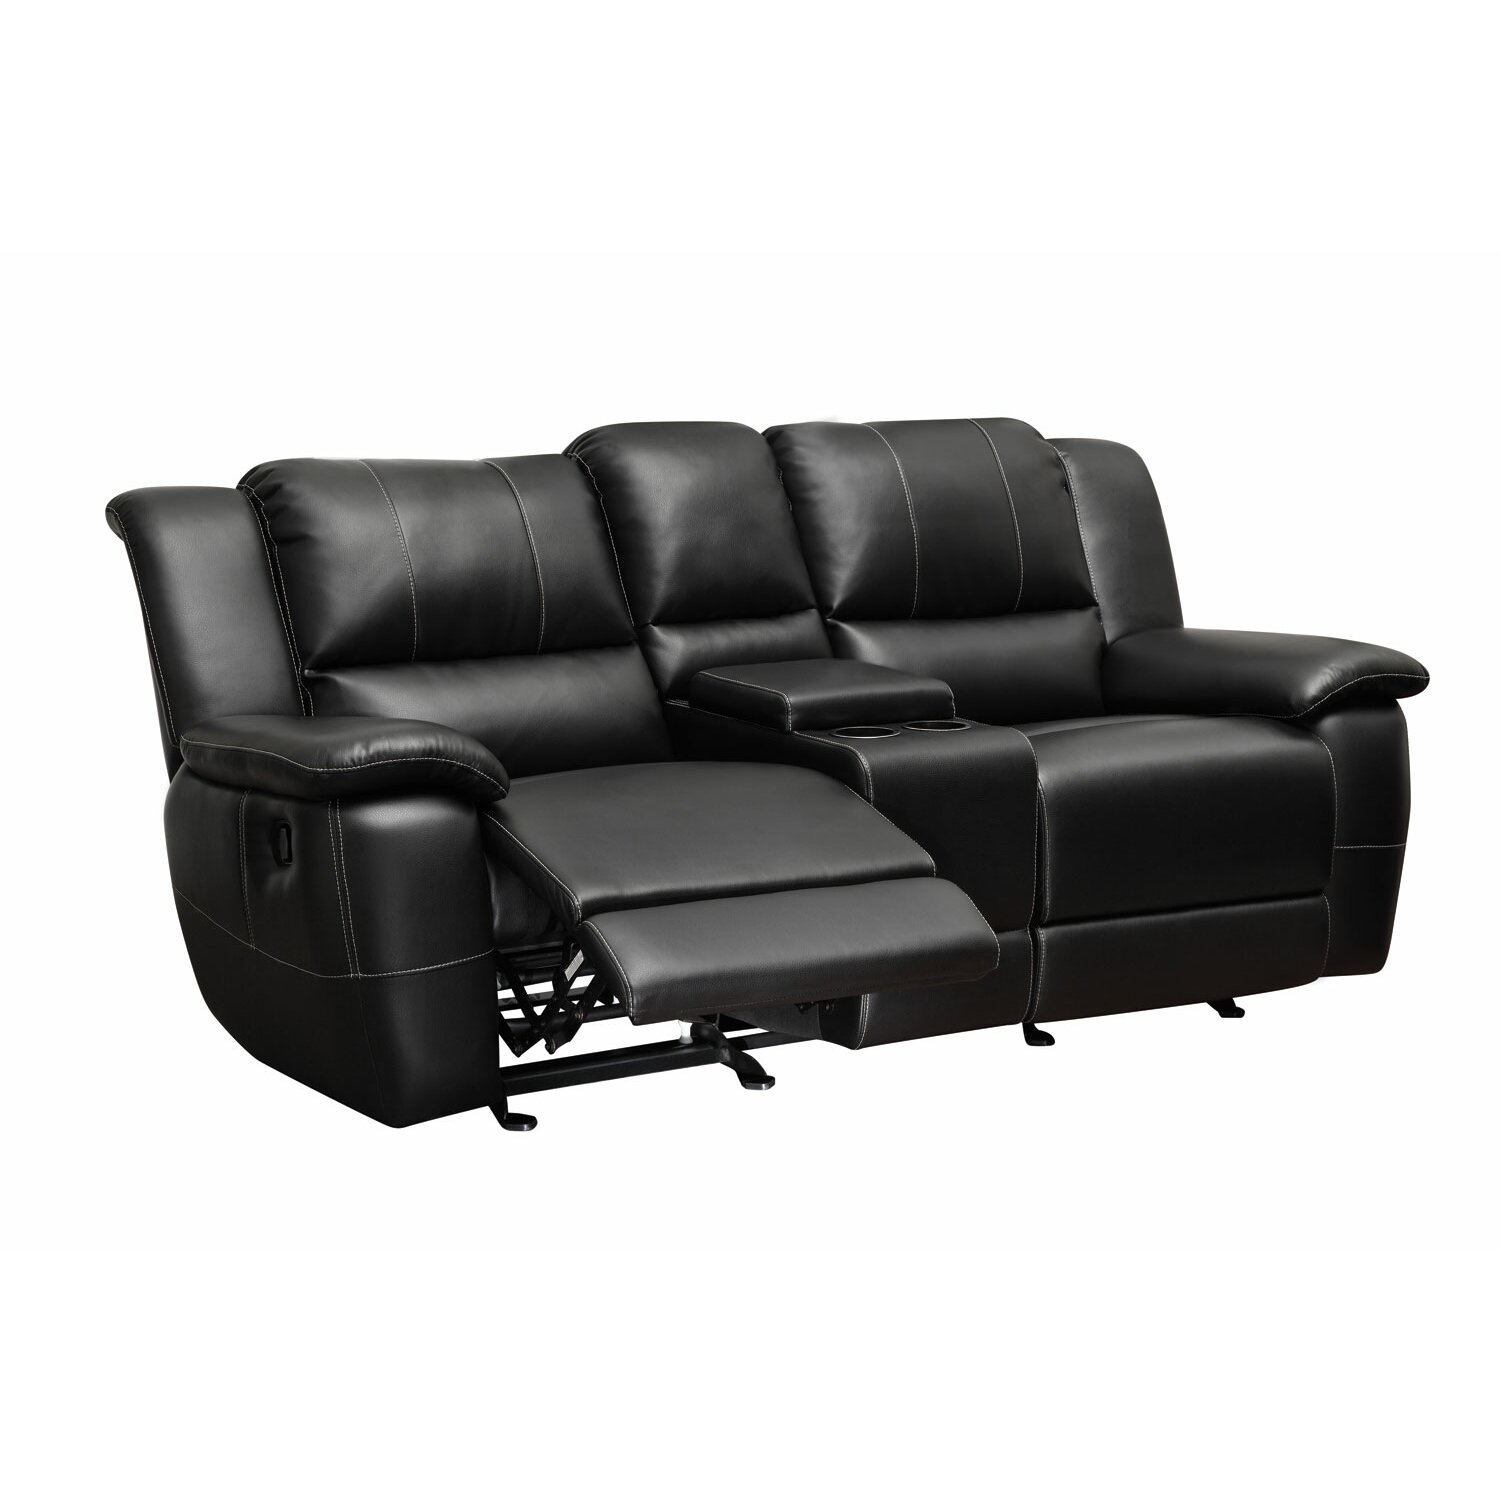 Wildon home robert double reclining loveseat reviews for Affordable furniture 290